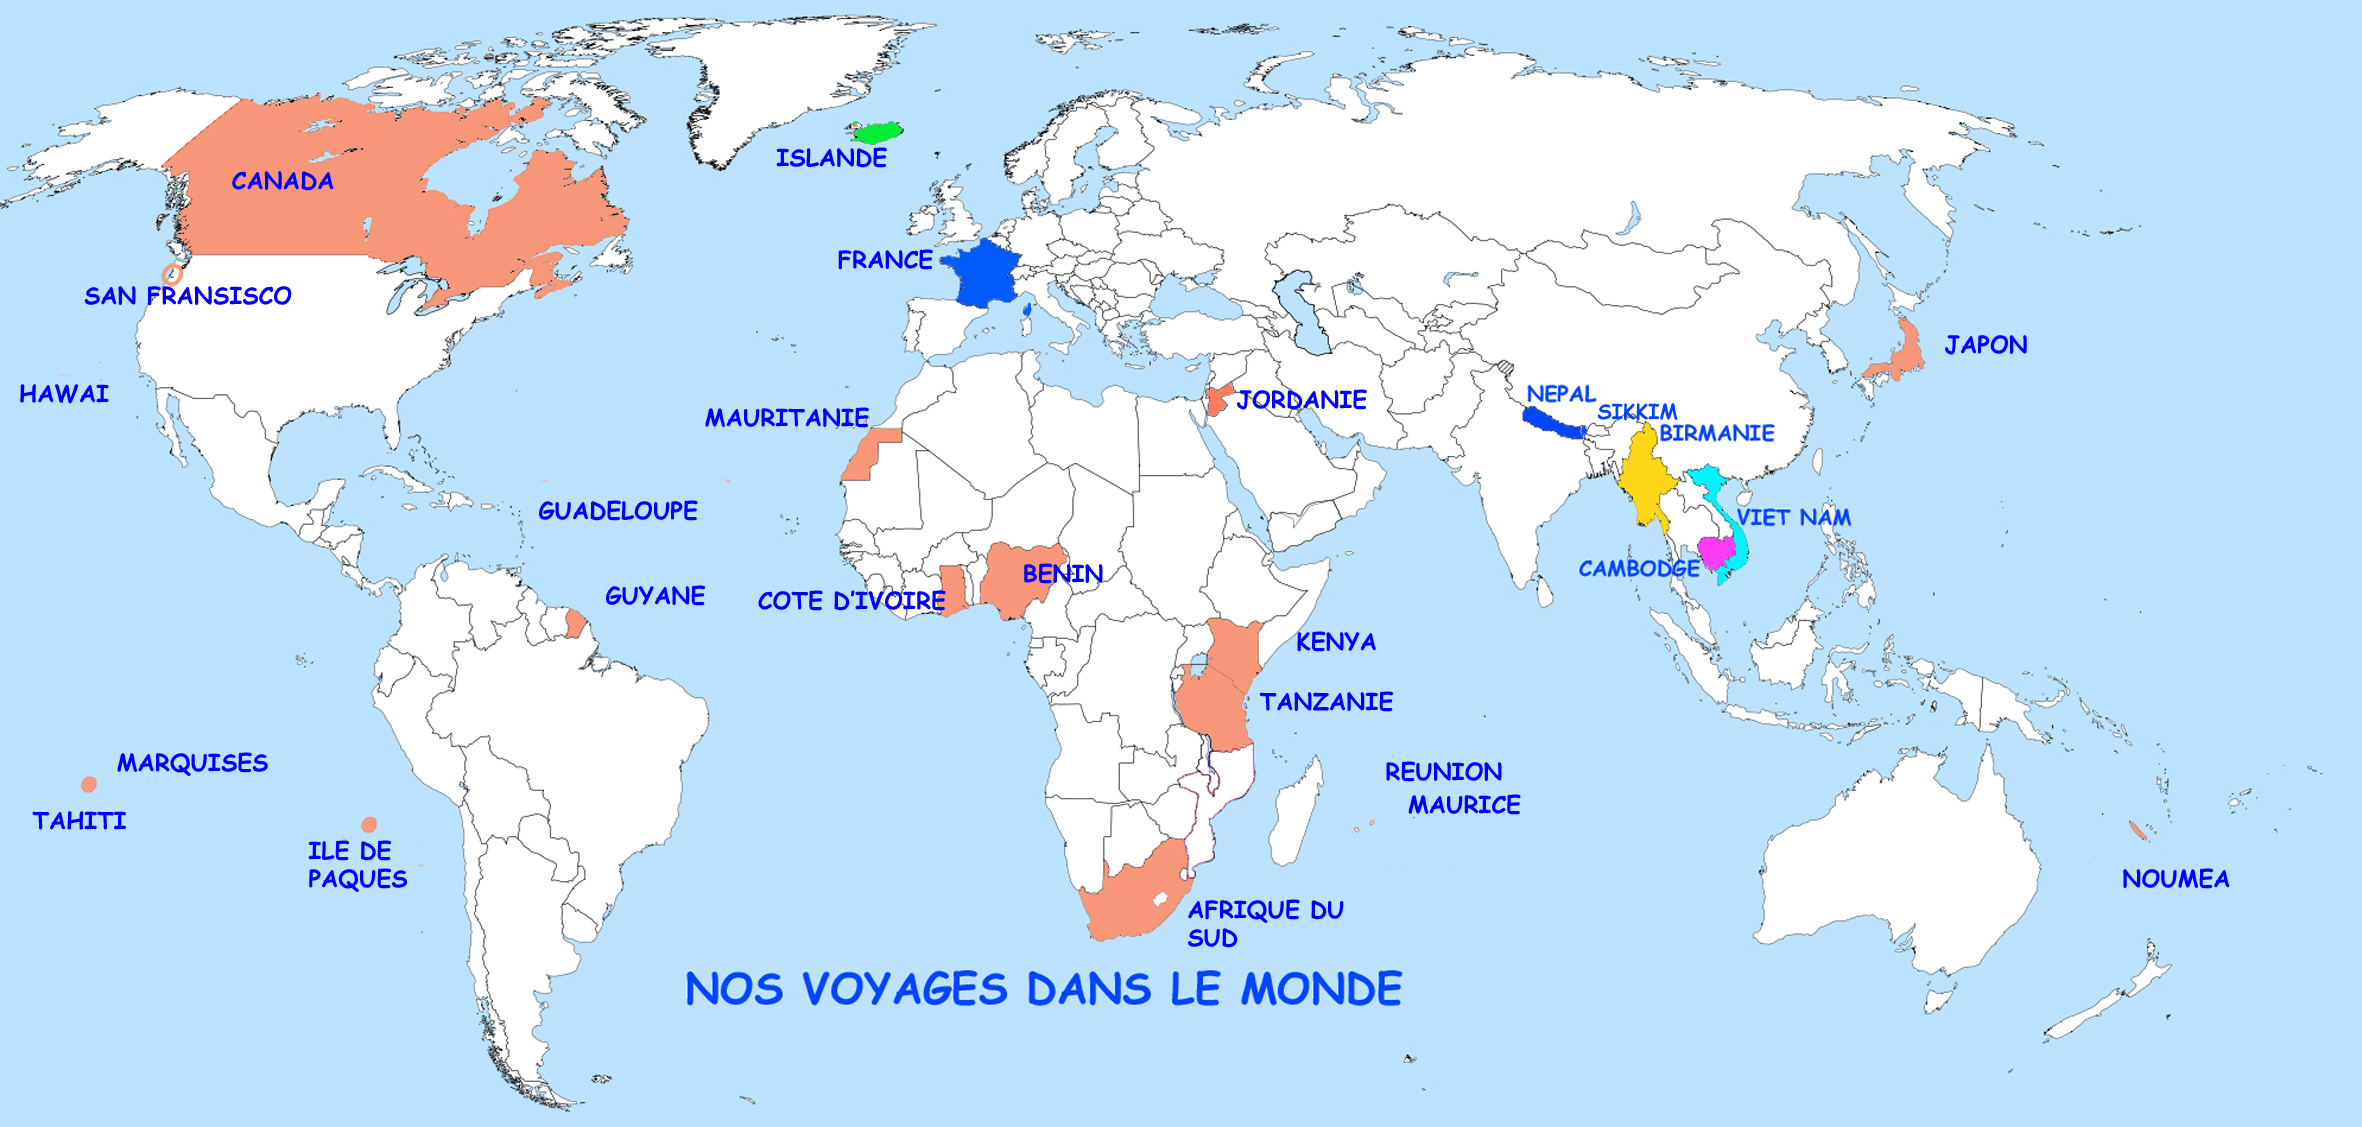 les-marquises-carte-du-monde - Photo